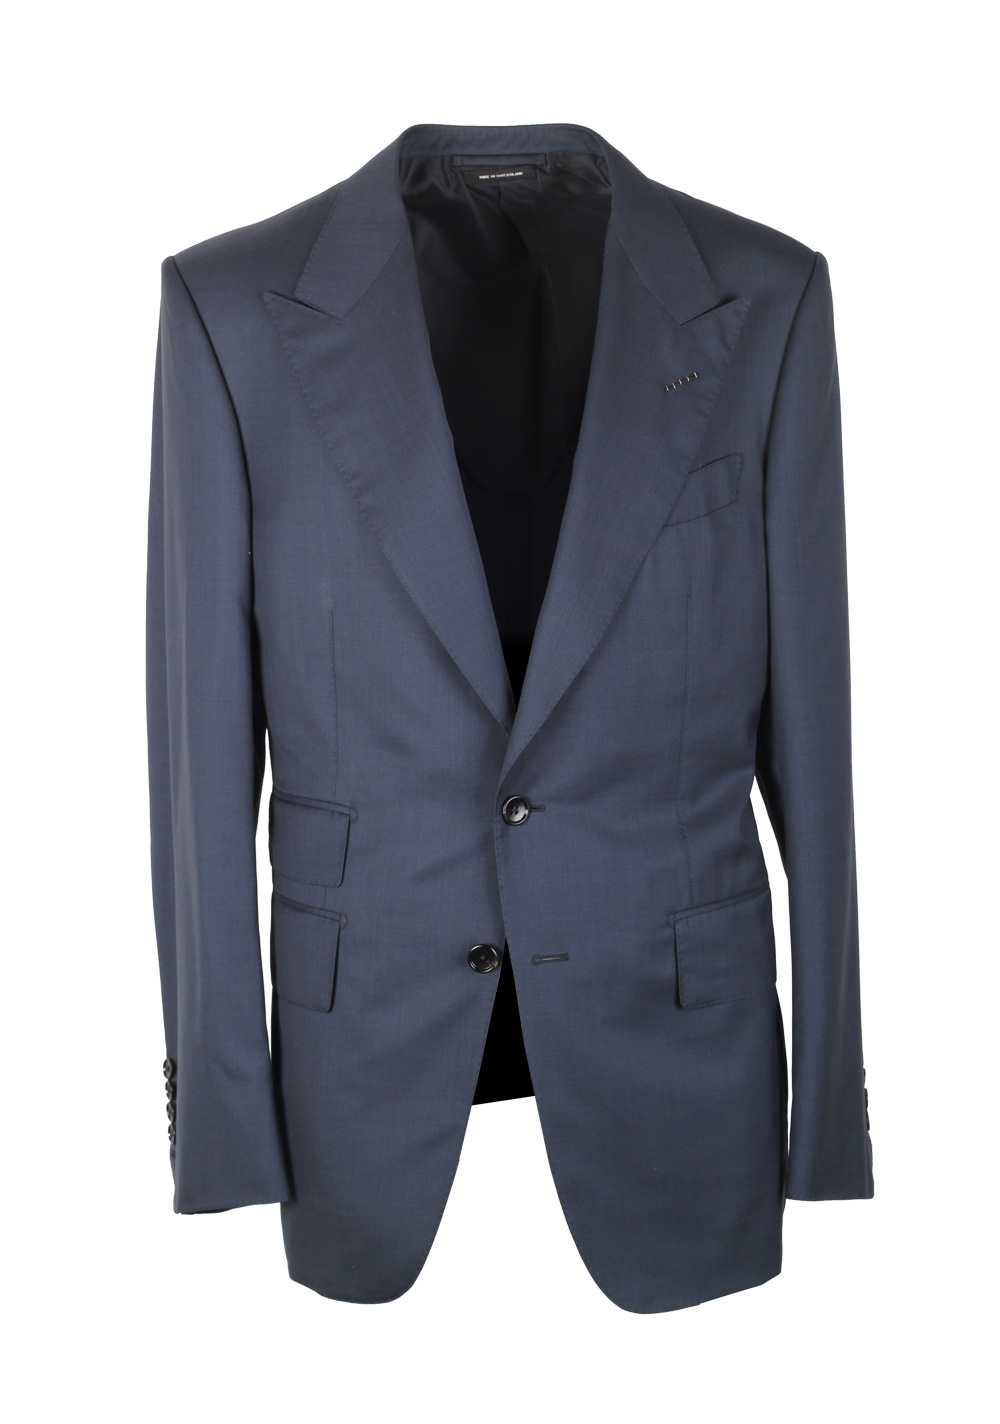 TOM FORD Shelton Solid Blue Suit Size 48 / 38R U.S. In Wool Silk | Costume Limité